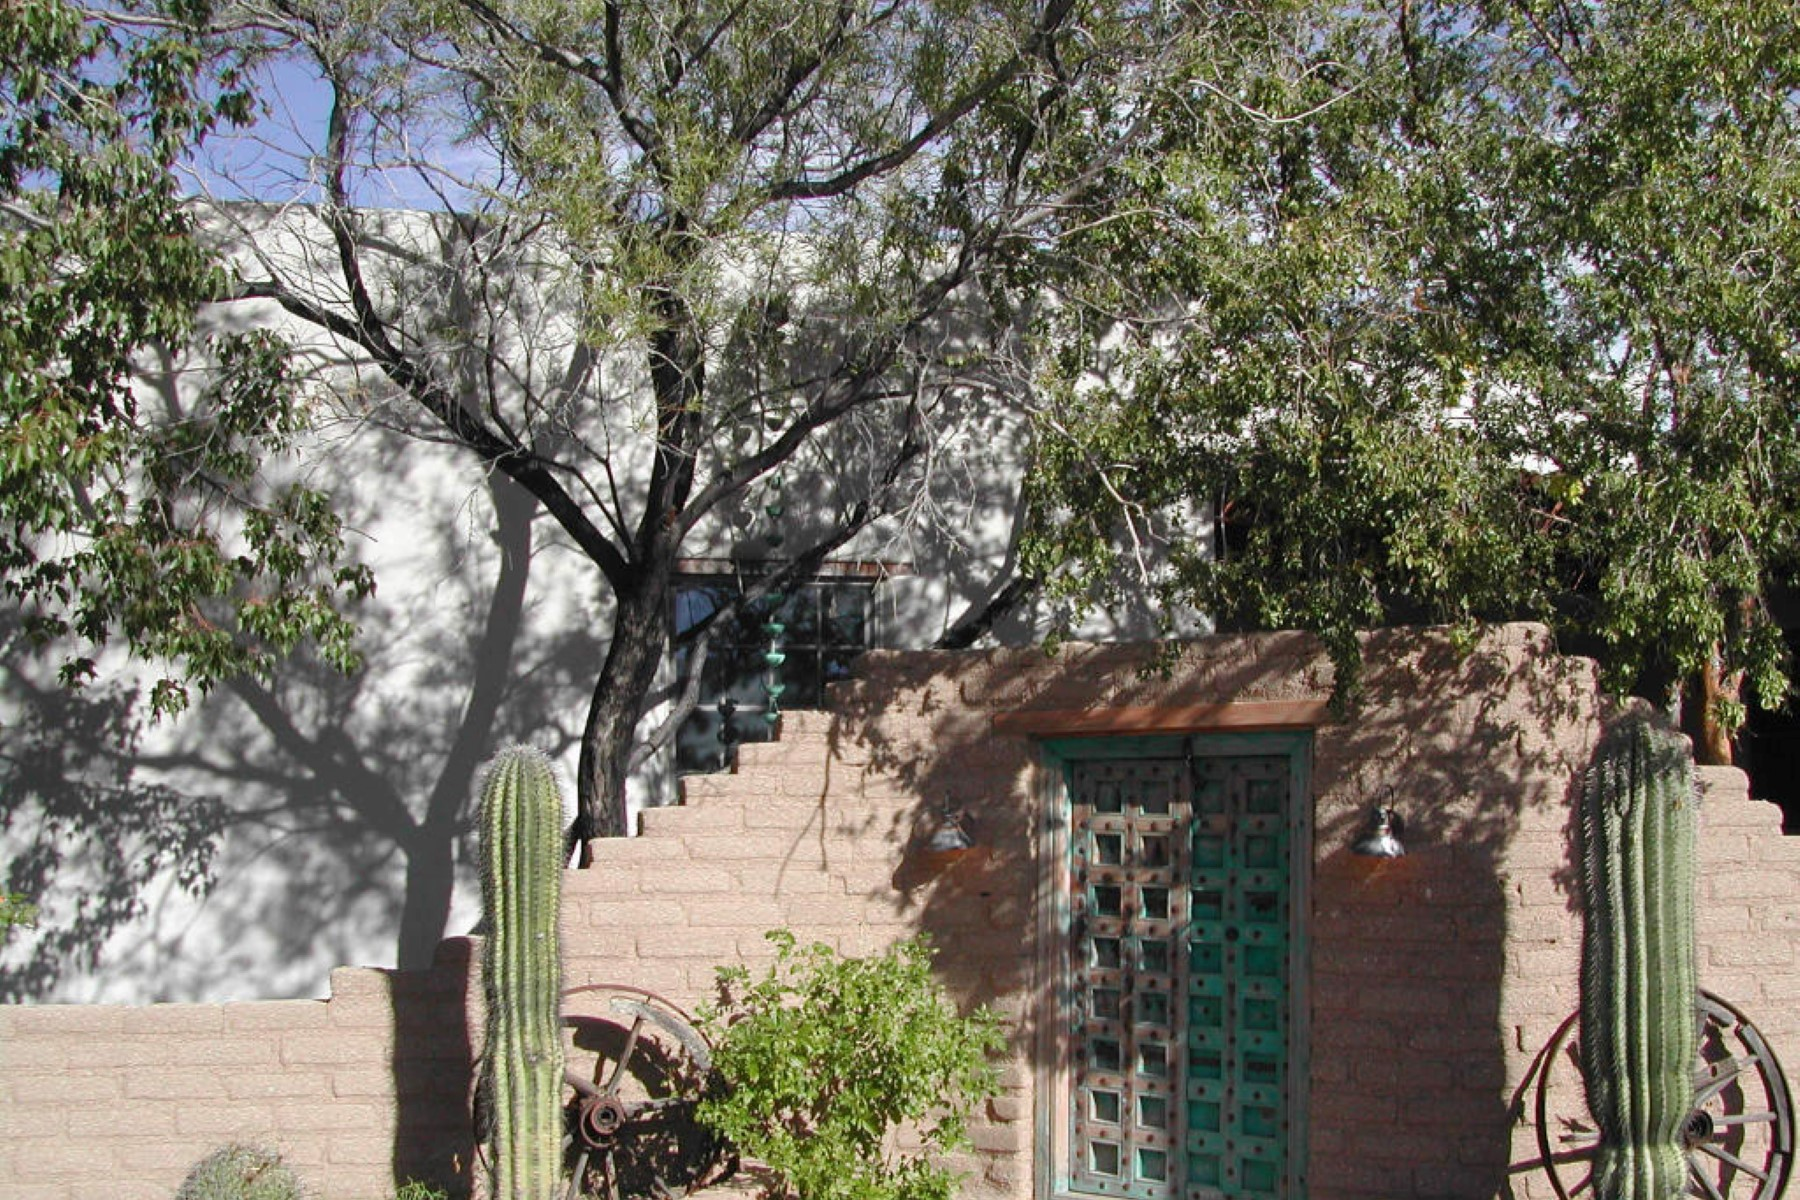 Single Family Home for Sale at True Santa Fe Home at the End of a Private Drive on 3.36 Acres 6080 W Peregrine Way Tucson, Arizona 85745 United States